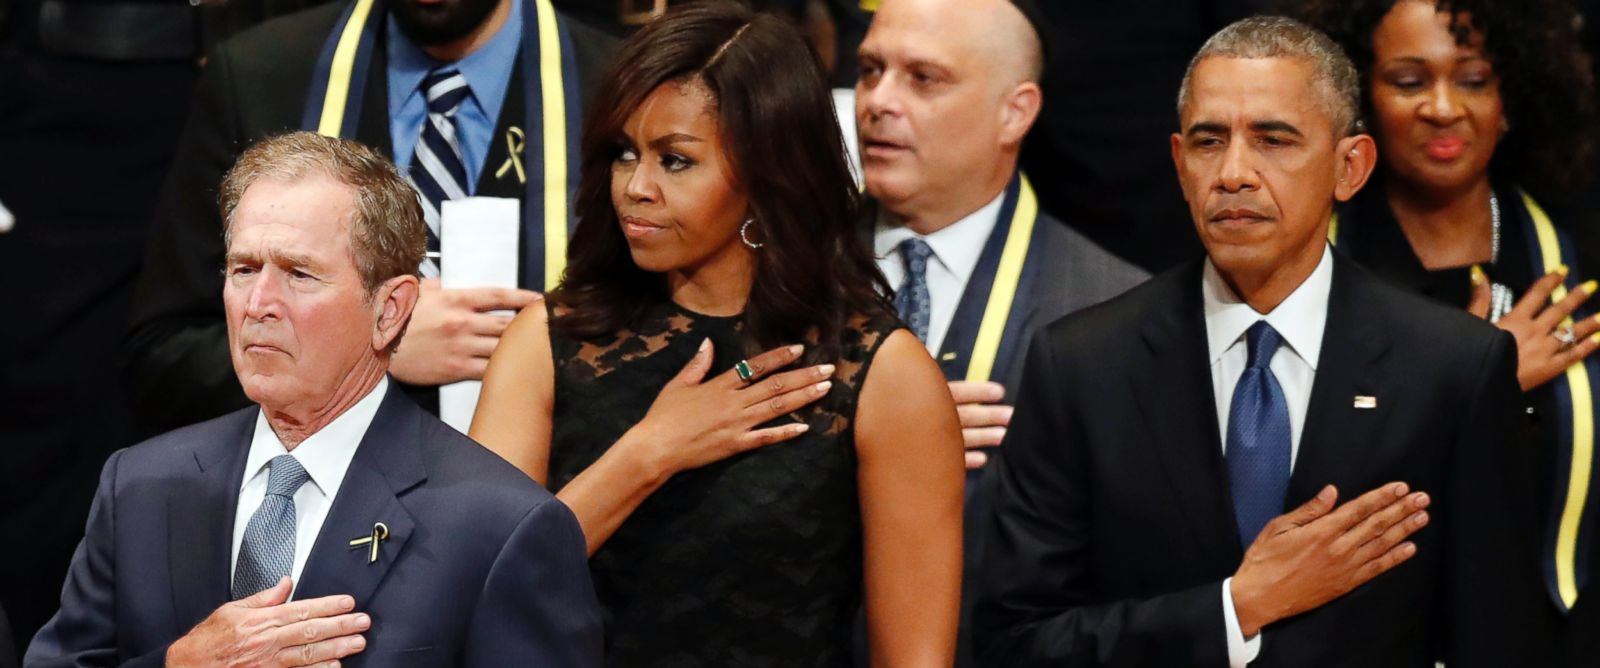 PHOTO: Former President George W. Bush, first lady Michelle Obama and President Barack Obama stand during an interfaith memorial service at the Morton H. Meyerson Symphony Center in Dallas, July 12, 2016, in Dallas.